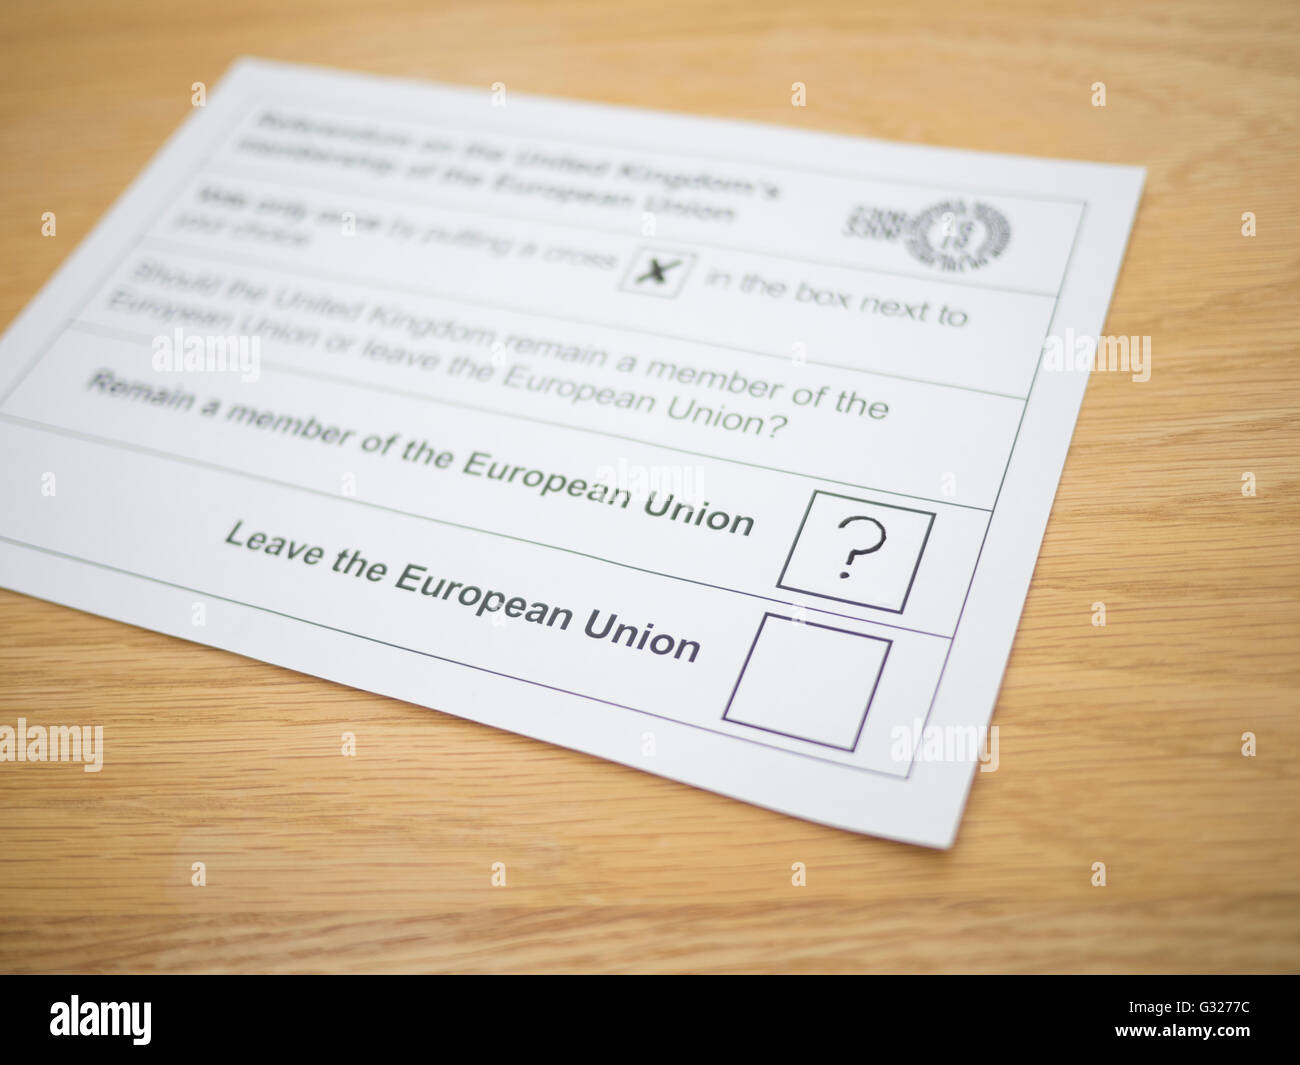 Exeter UK 7 June 2016 EU referendum voting by postal ballot floating voter undecided question mark unanswered question. - Stock Image